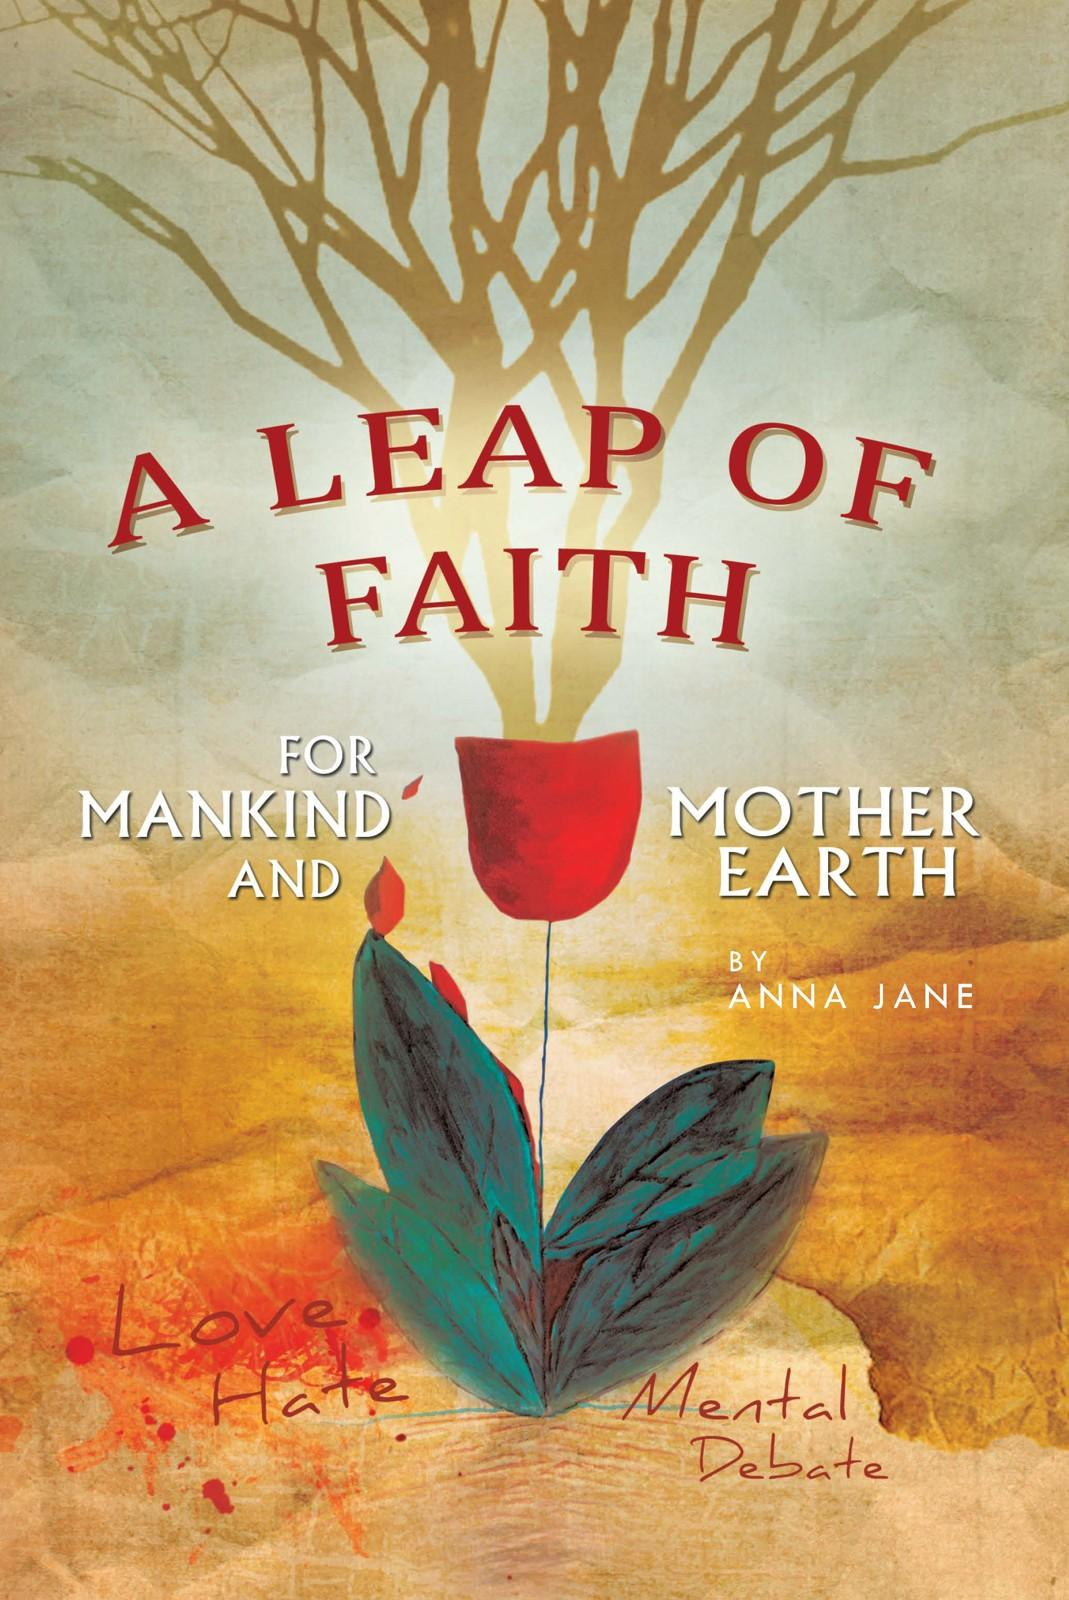 A Leap of Faith: For Mankind and Mother Earth